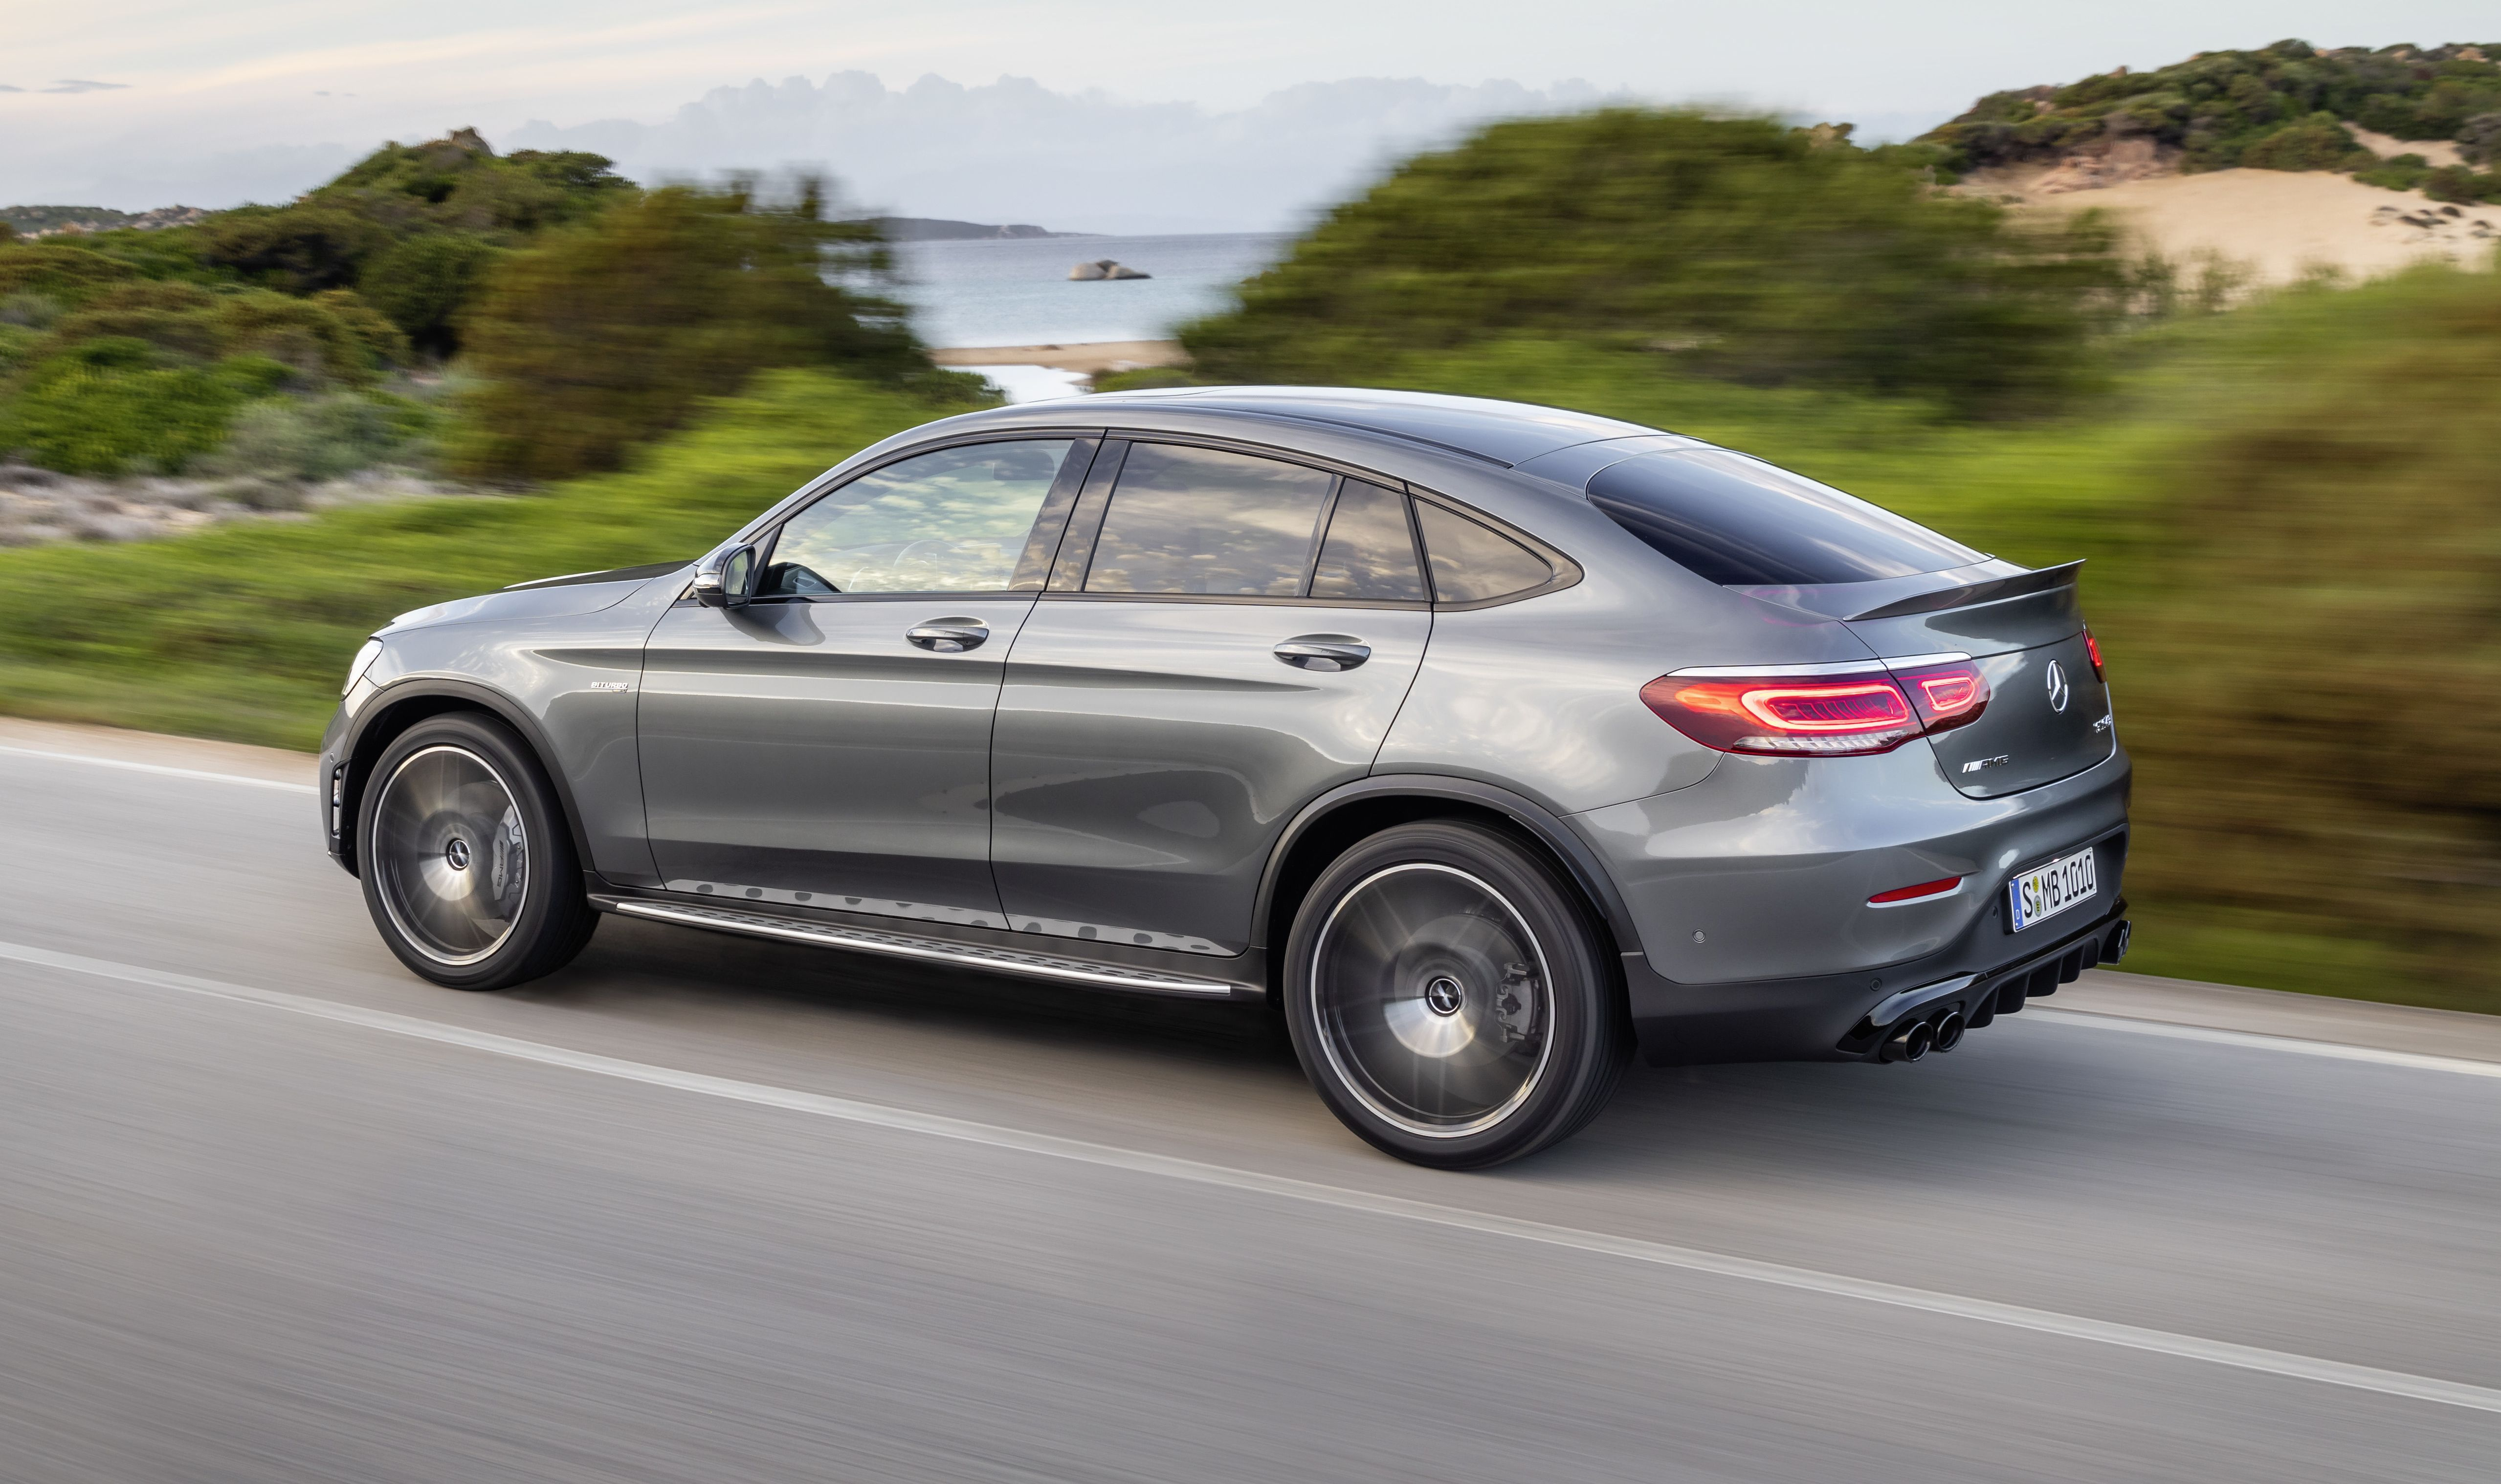 Mercedes Amg Glc43 Unveiled With Aggressive Looks And Beefed Up